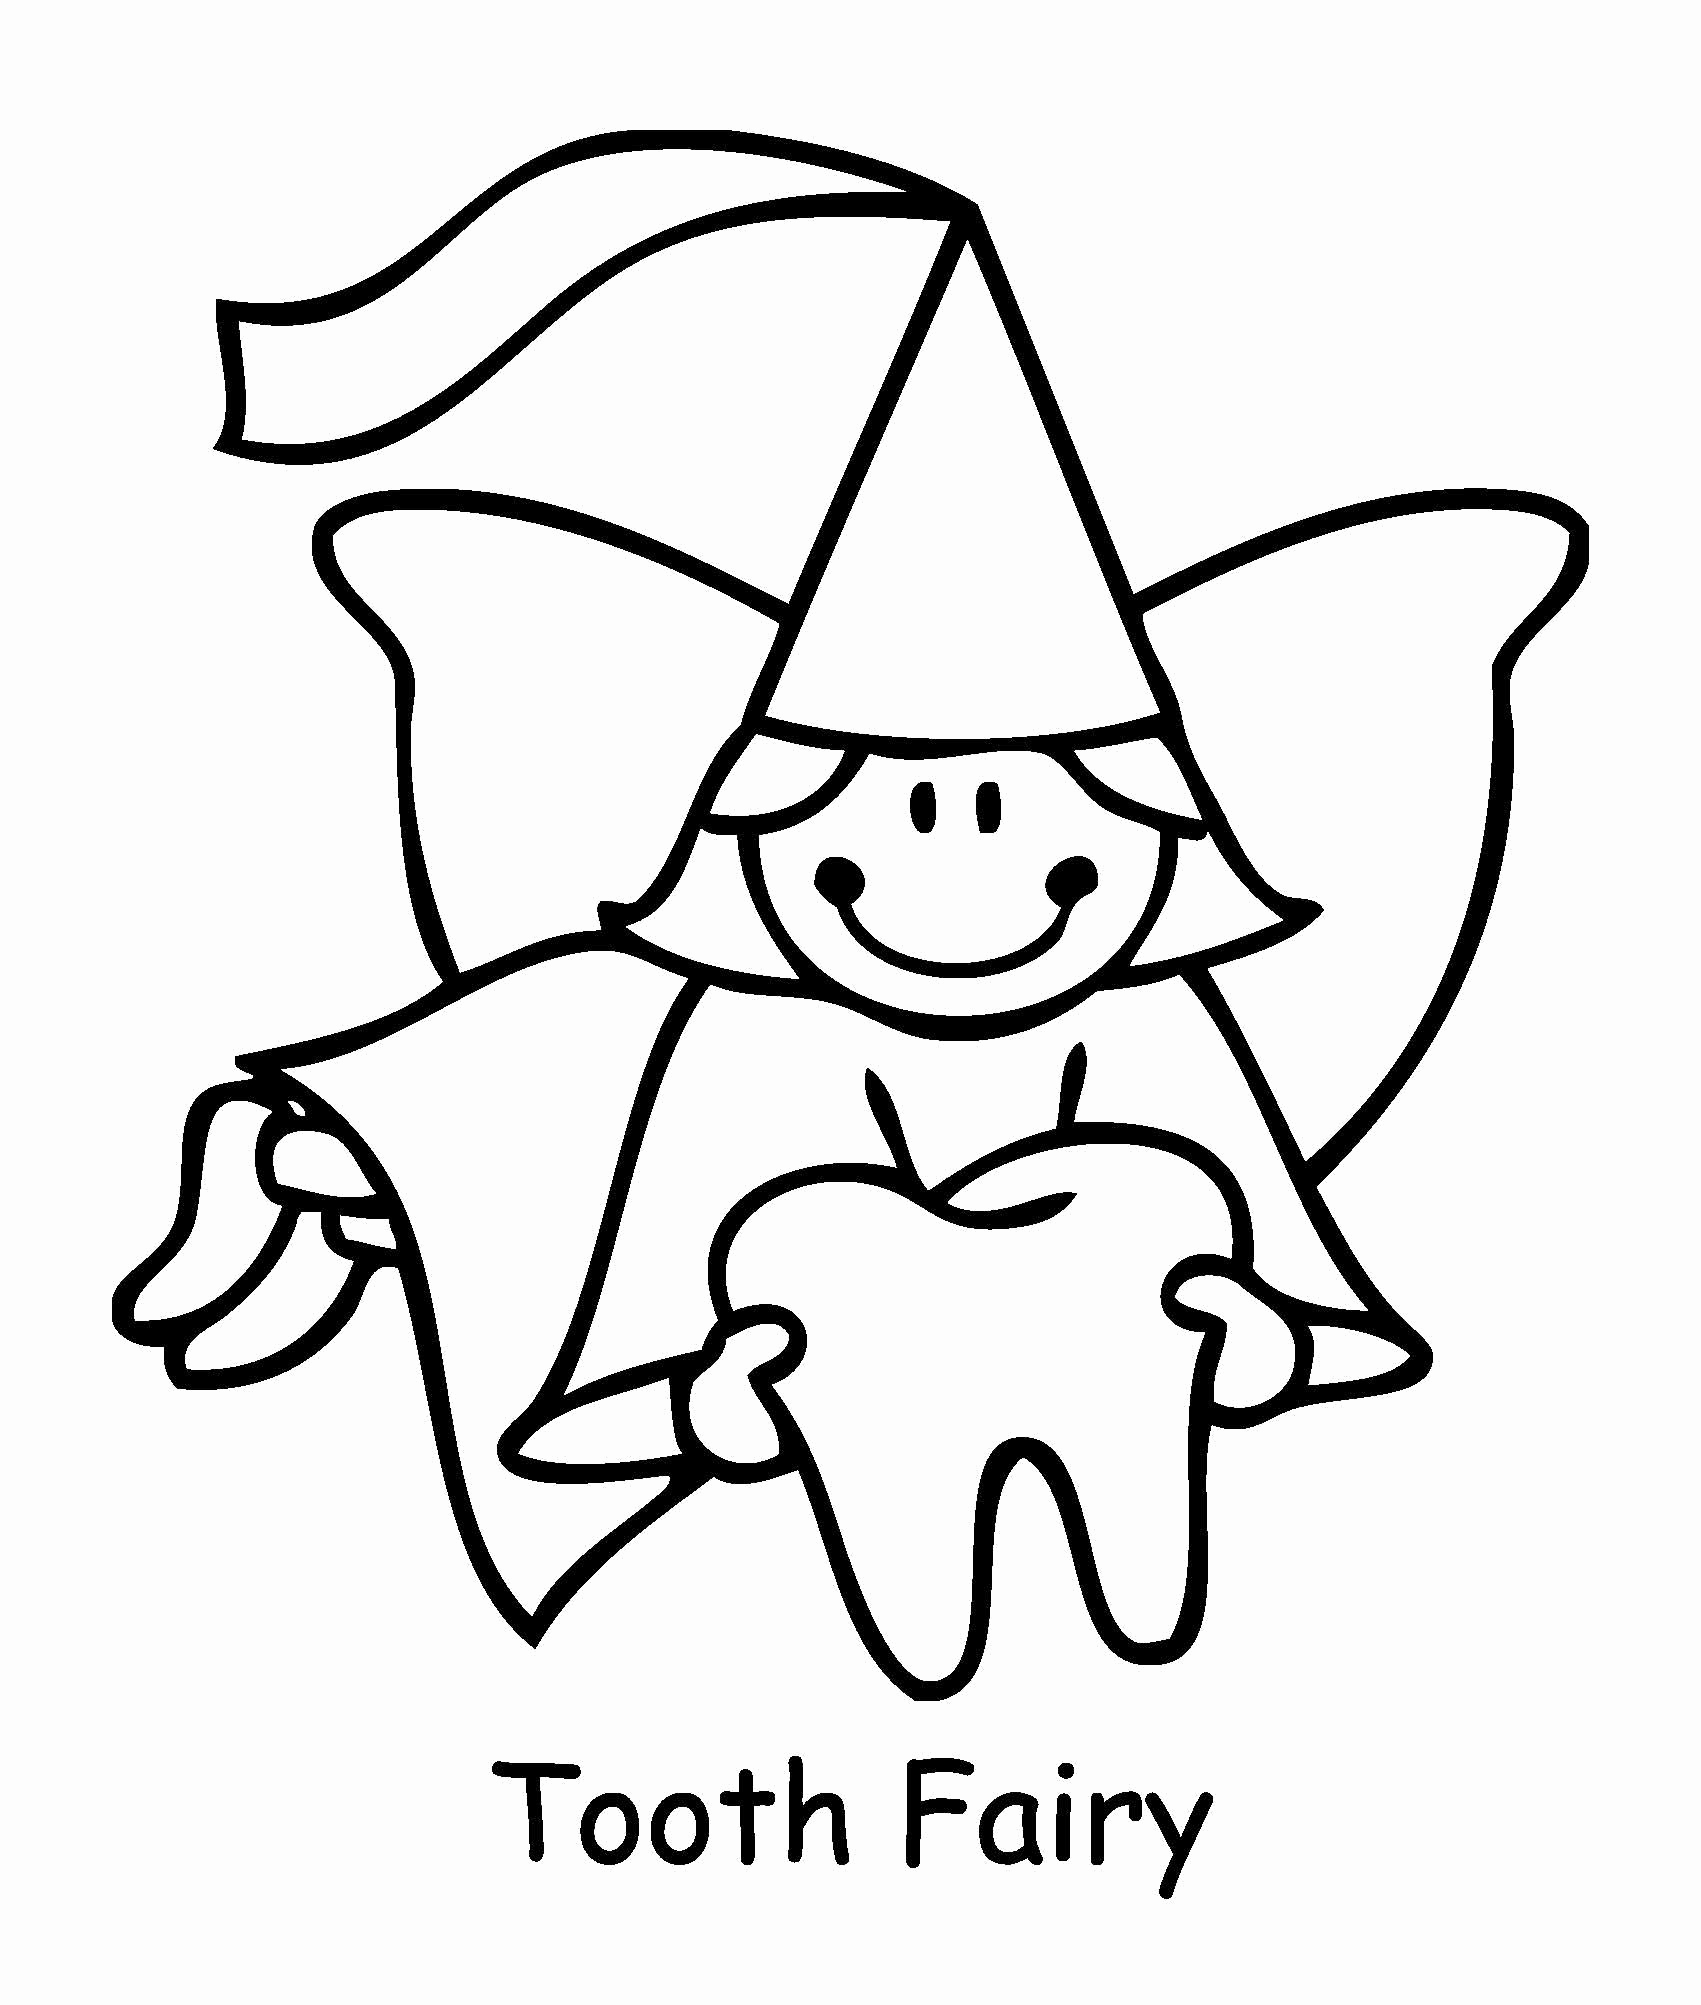 Dental Coloring Pages Collection Teeth Coloring Pages Coloring to Print Of No Fear Kids Zone Download